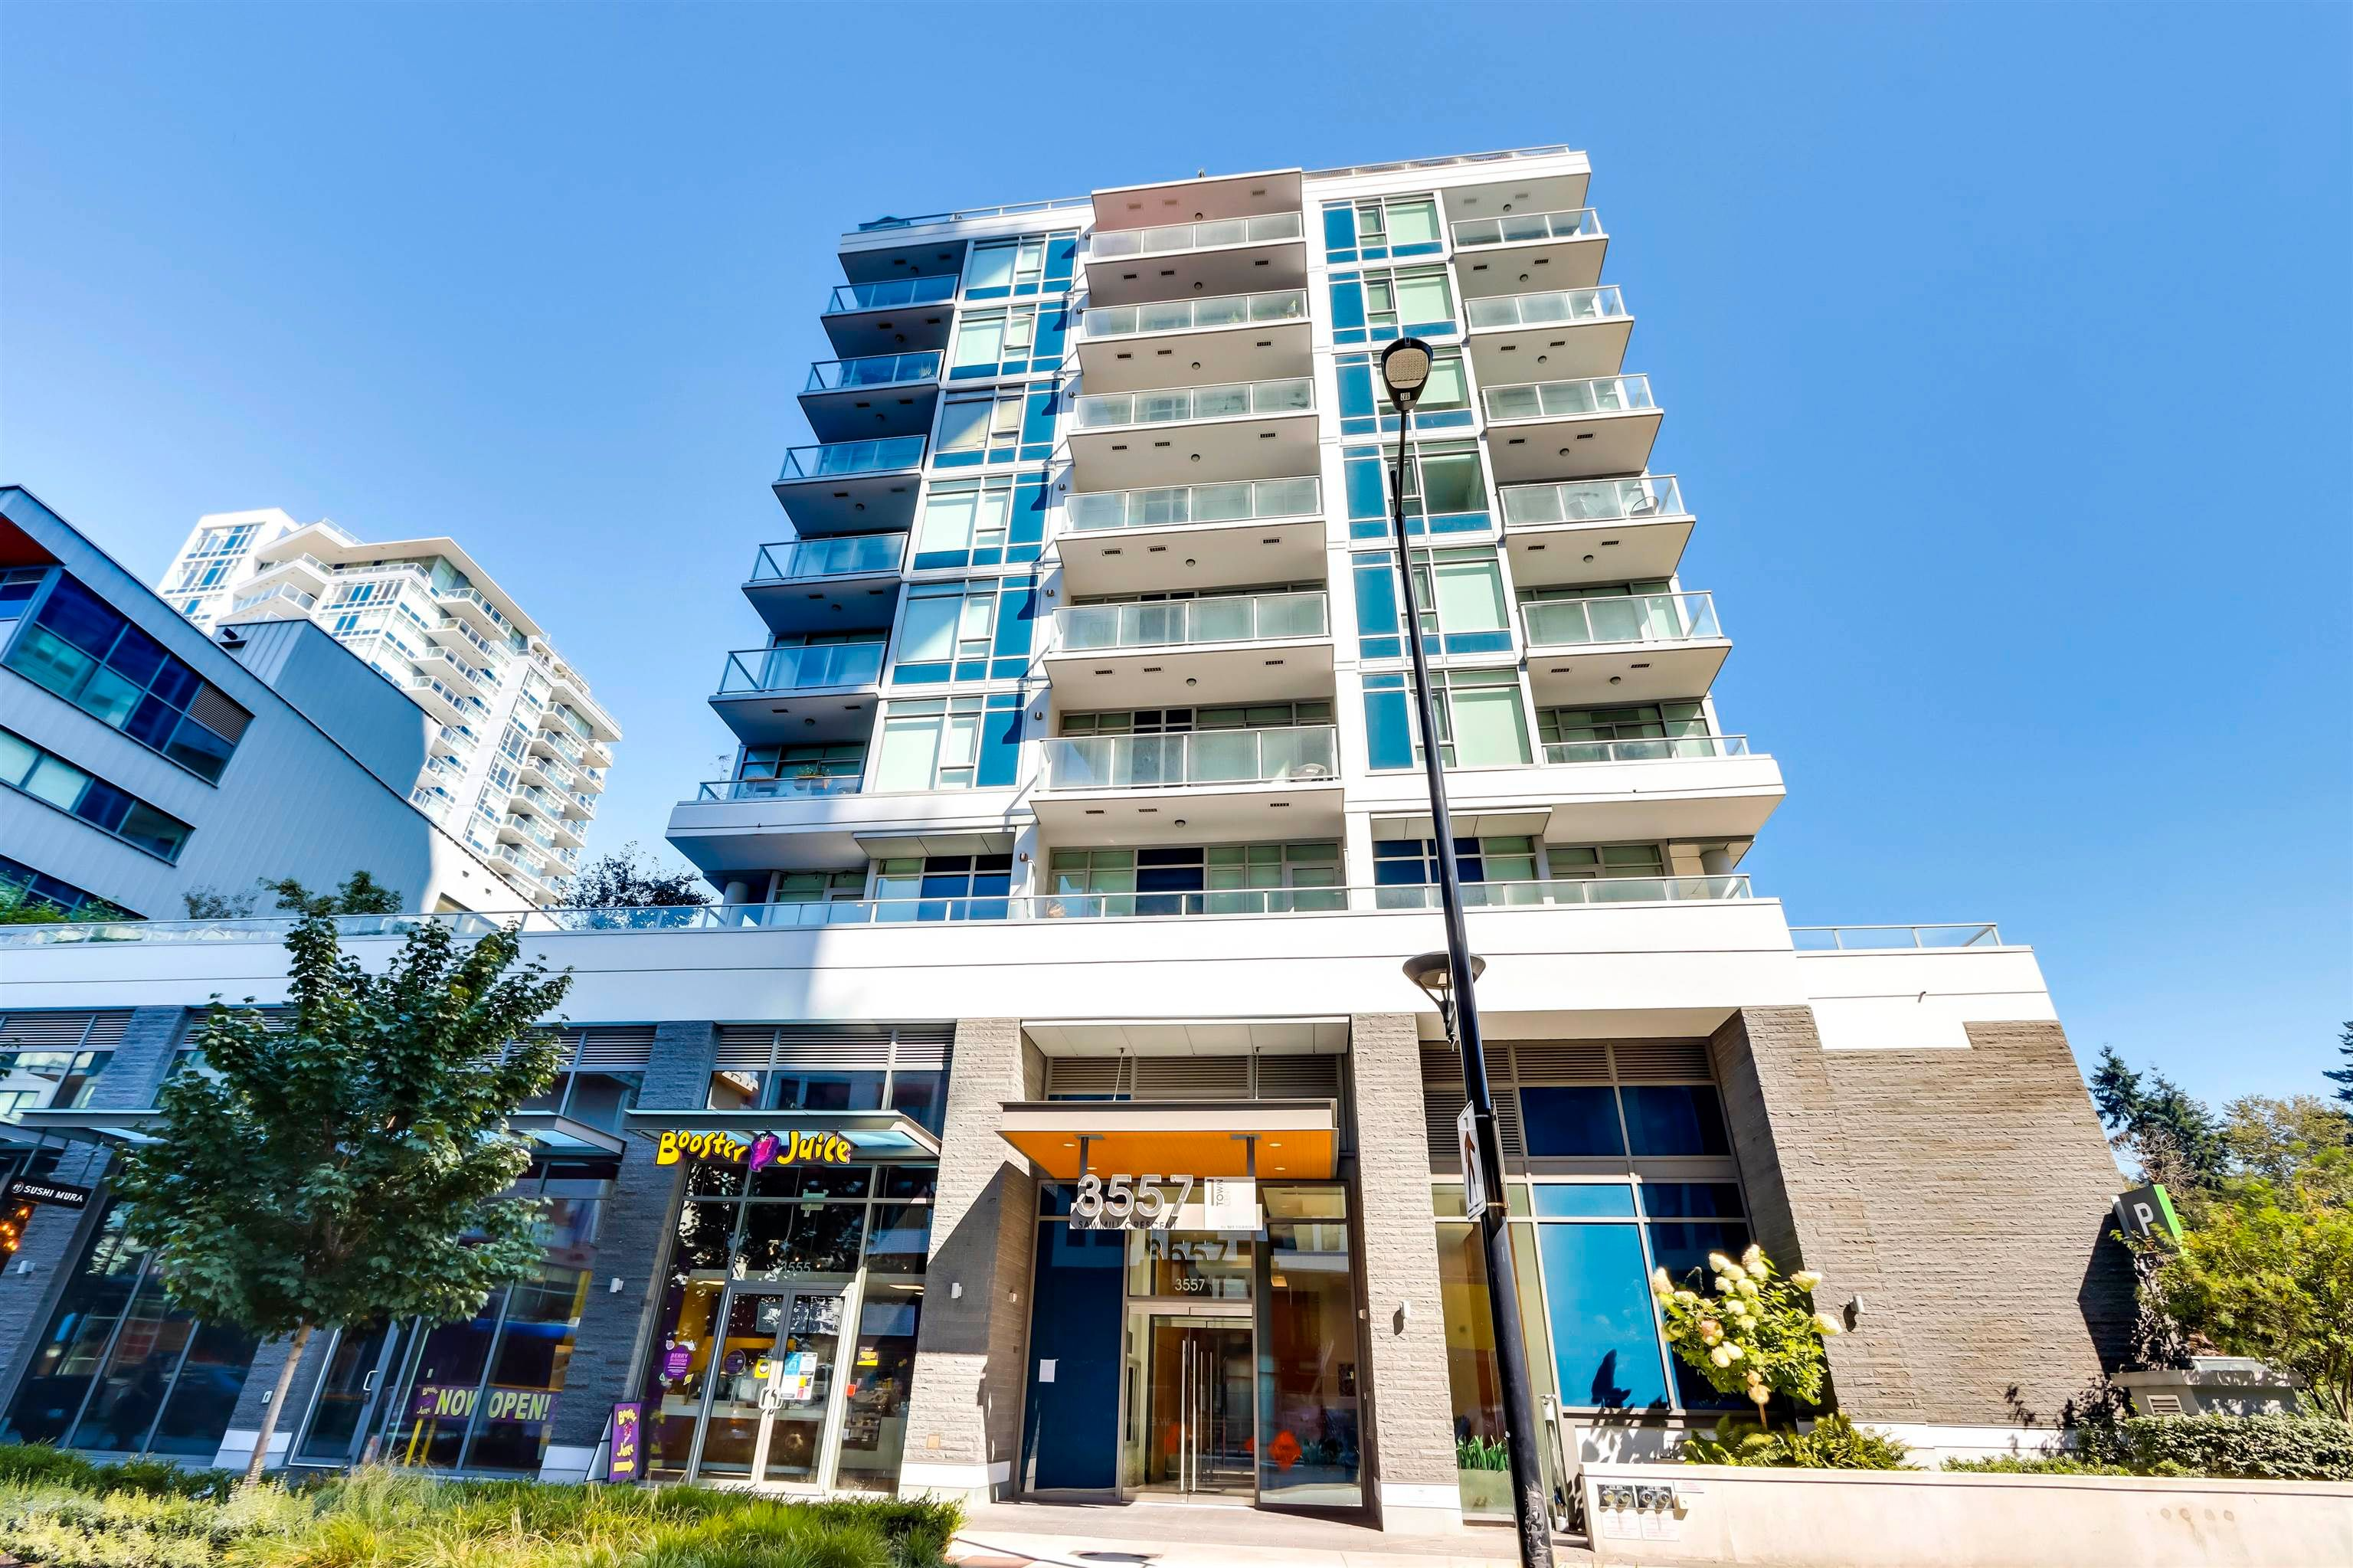 """Main Photo: 210 3557 SAWMILL Crescent in Vancouver: South Marine Condo for sale in """"WESGROUP - ONE TOWN CENTER"""" (Vancouver East)  : MLS®# R2612190"""